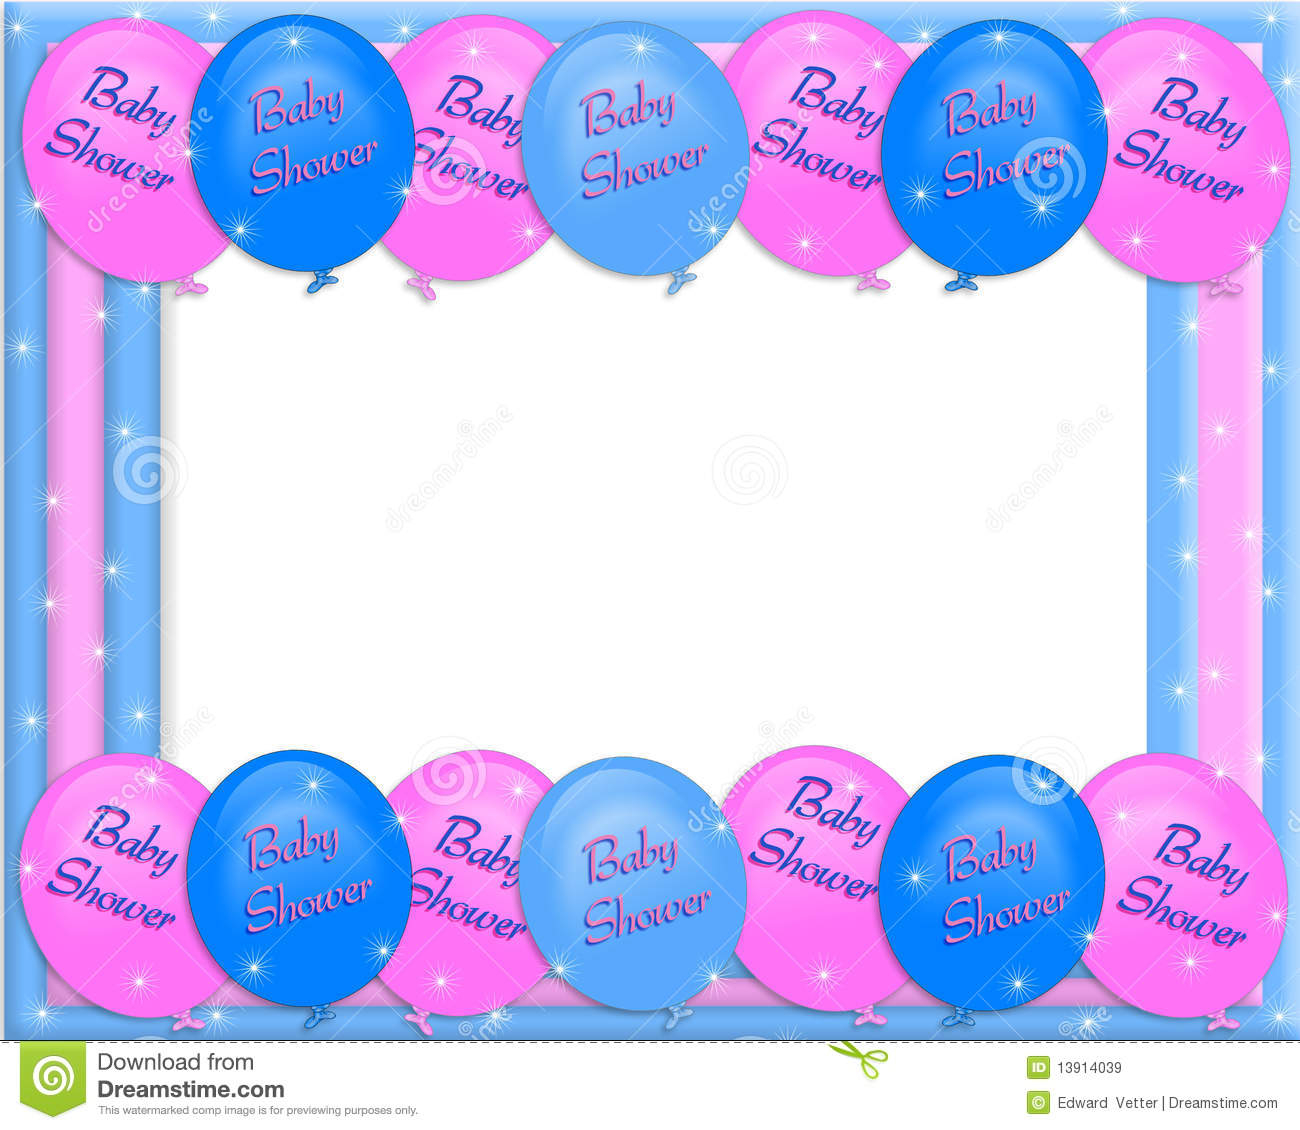 Glamorous Free Baby Borders For Word Documents - Acur.lunamedia.co intended for Unique Baby Shower Borders